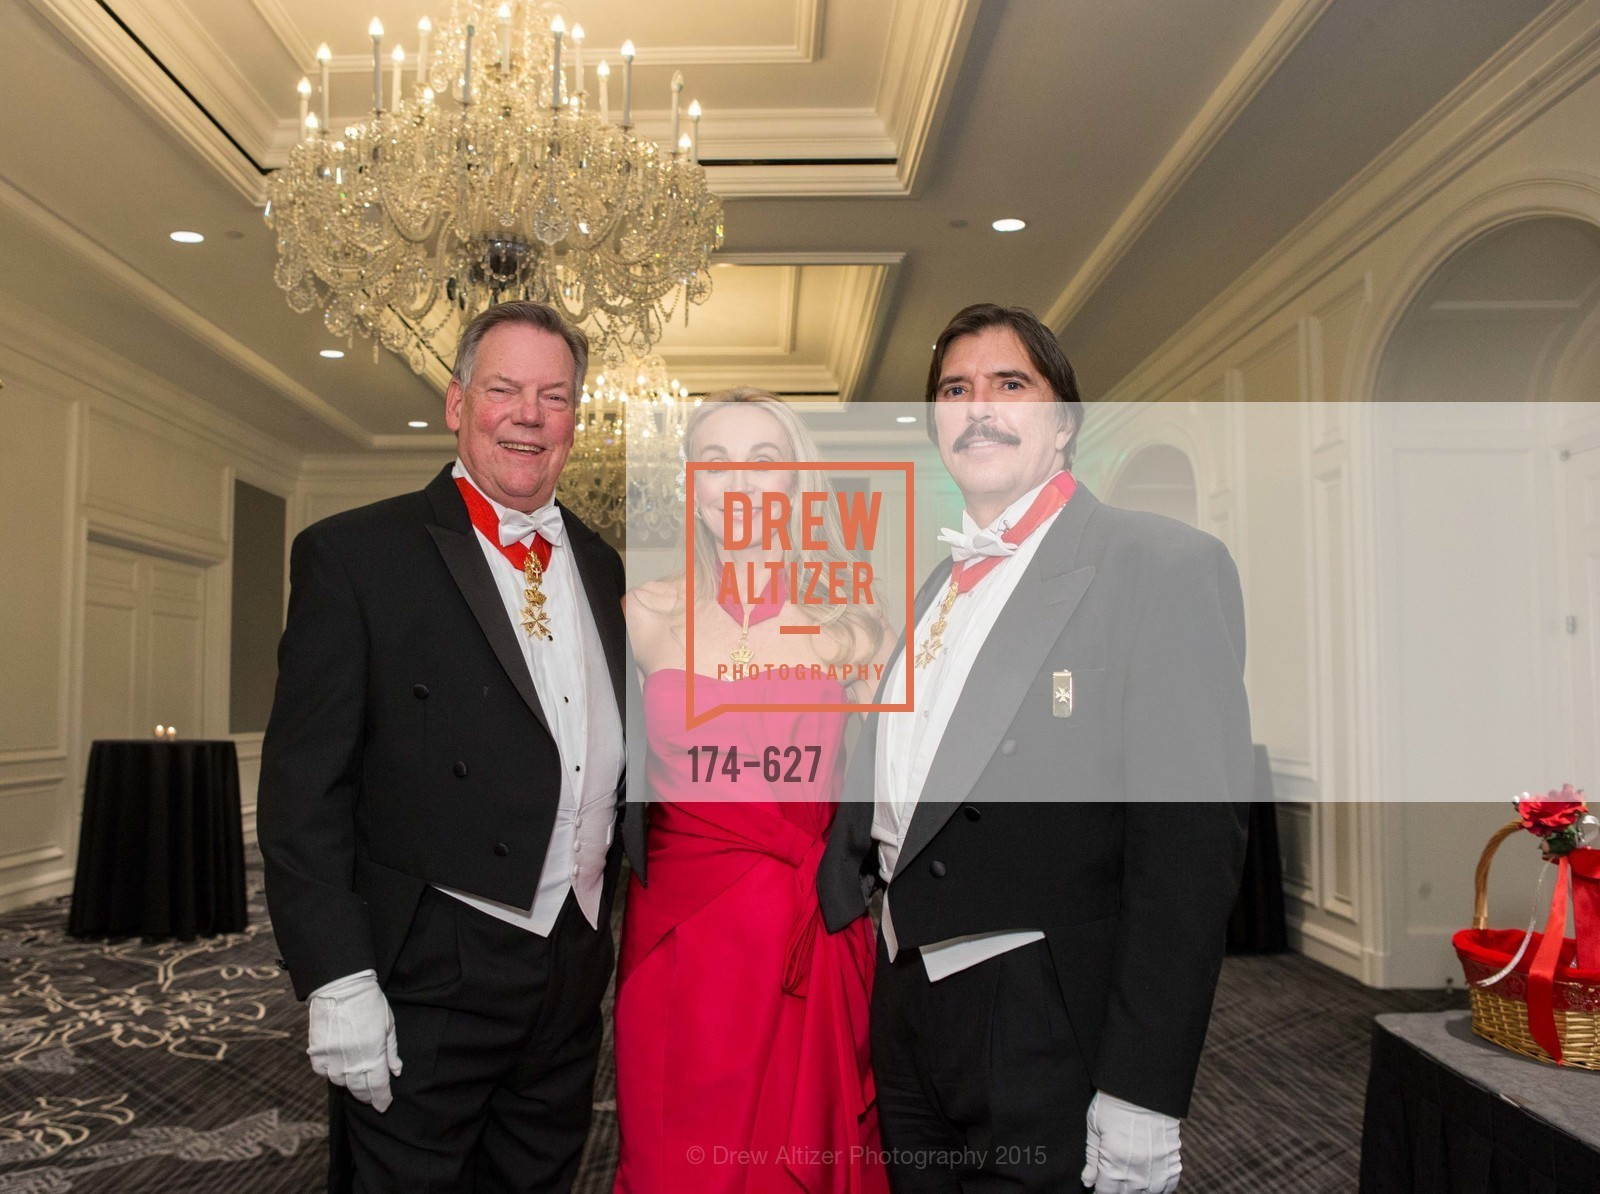 Bill Gisvold, Giselle Anna Parry, John Rosin, Sovereign Order Of St John of Jerusalem Knights Hospitaller Gala, Ritz Carlton San Francisco, December 5th, 2015,Drew Altizer, Drew Altizer Photography, full-service agency, private events, San Francisco photographer, photographer california